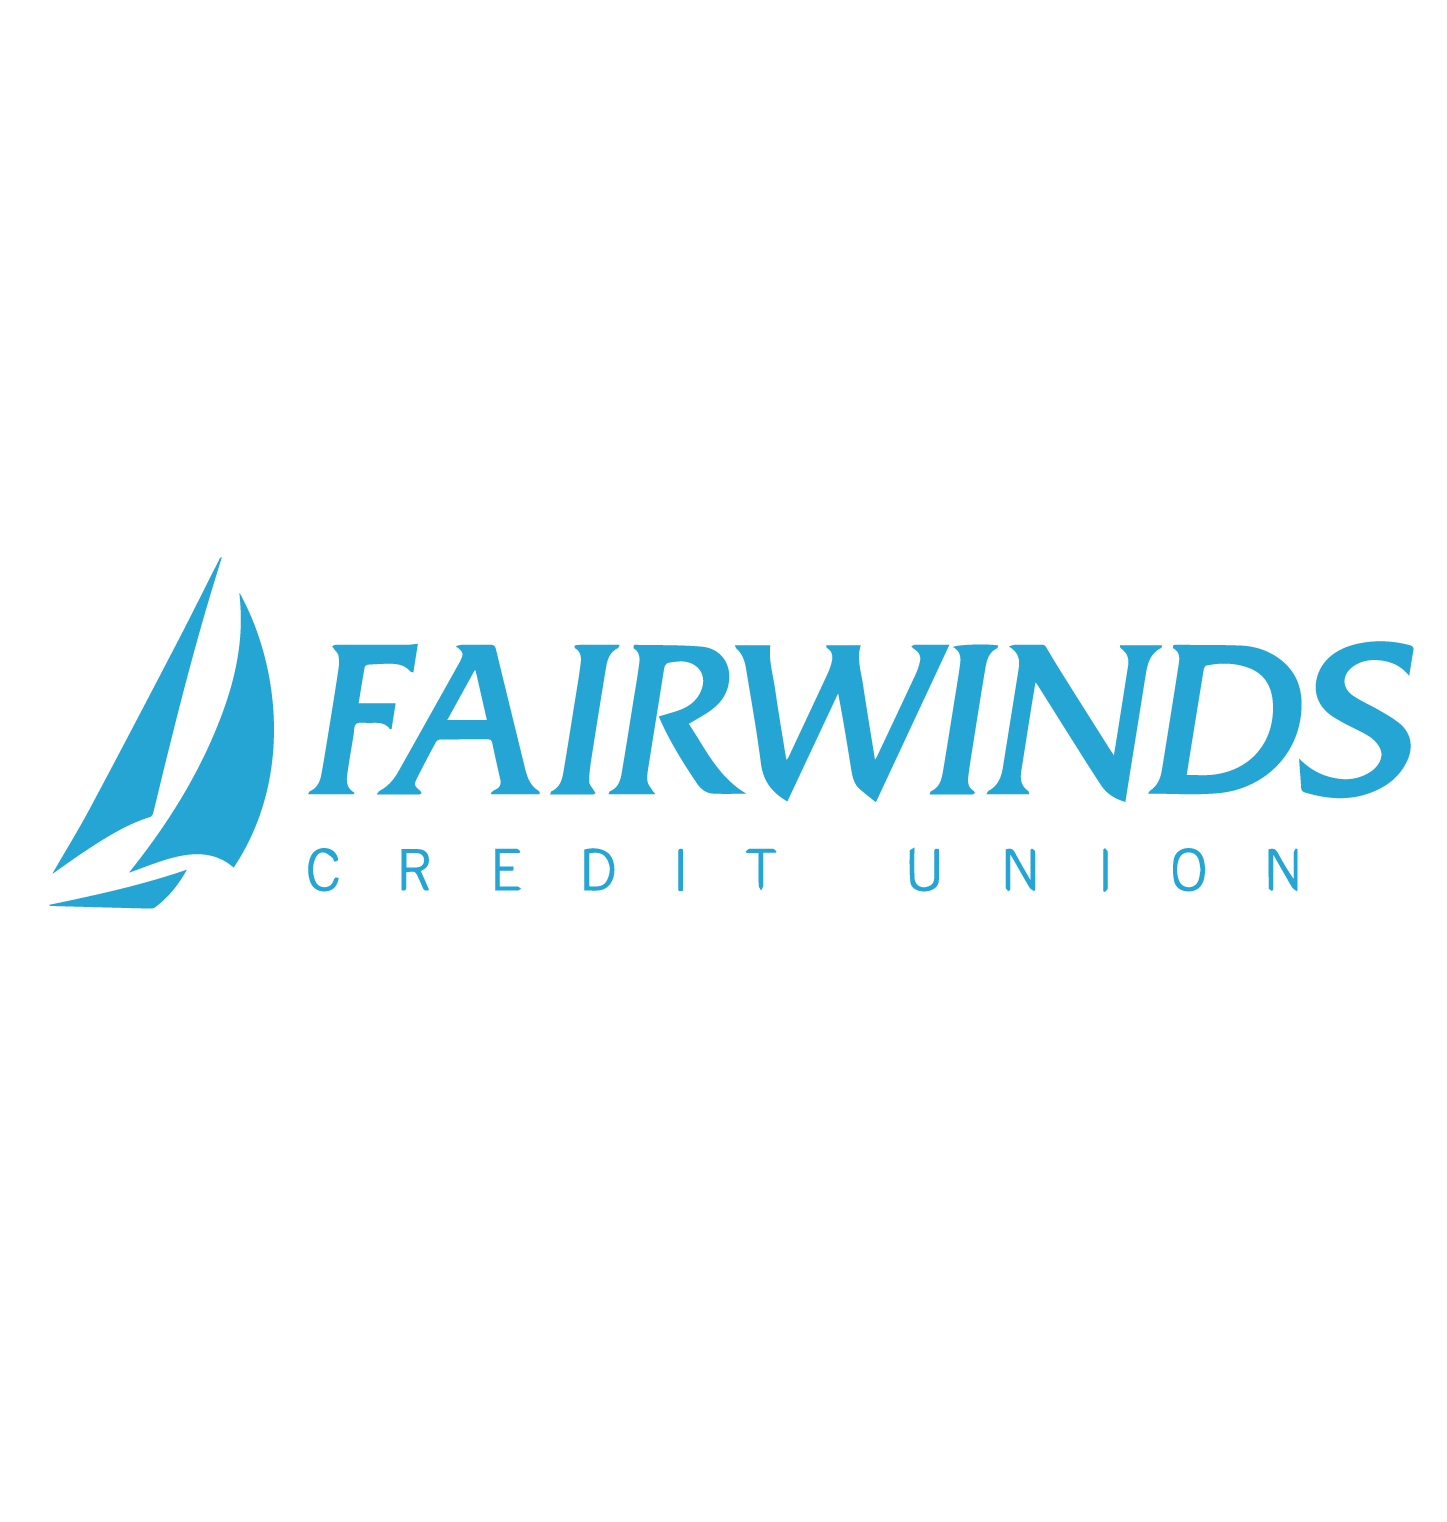 Fairwinds-01.png